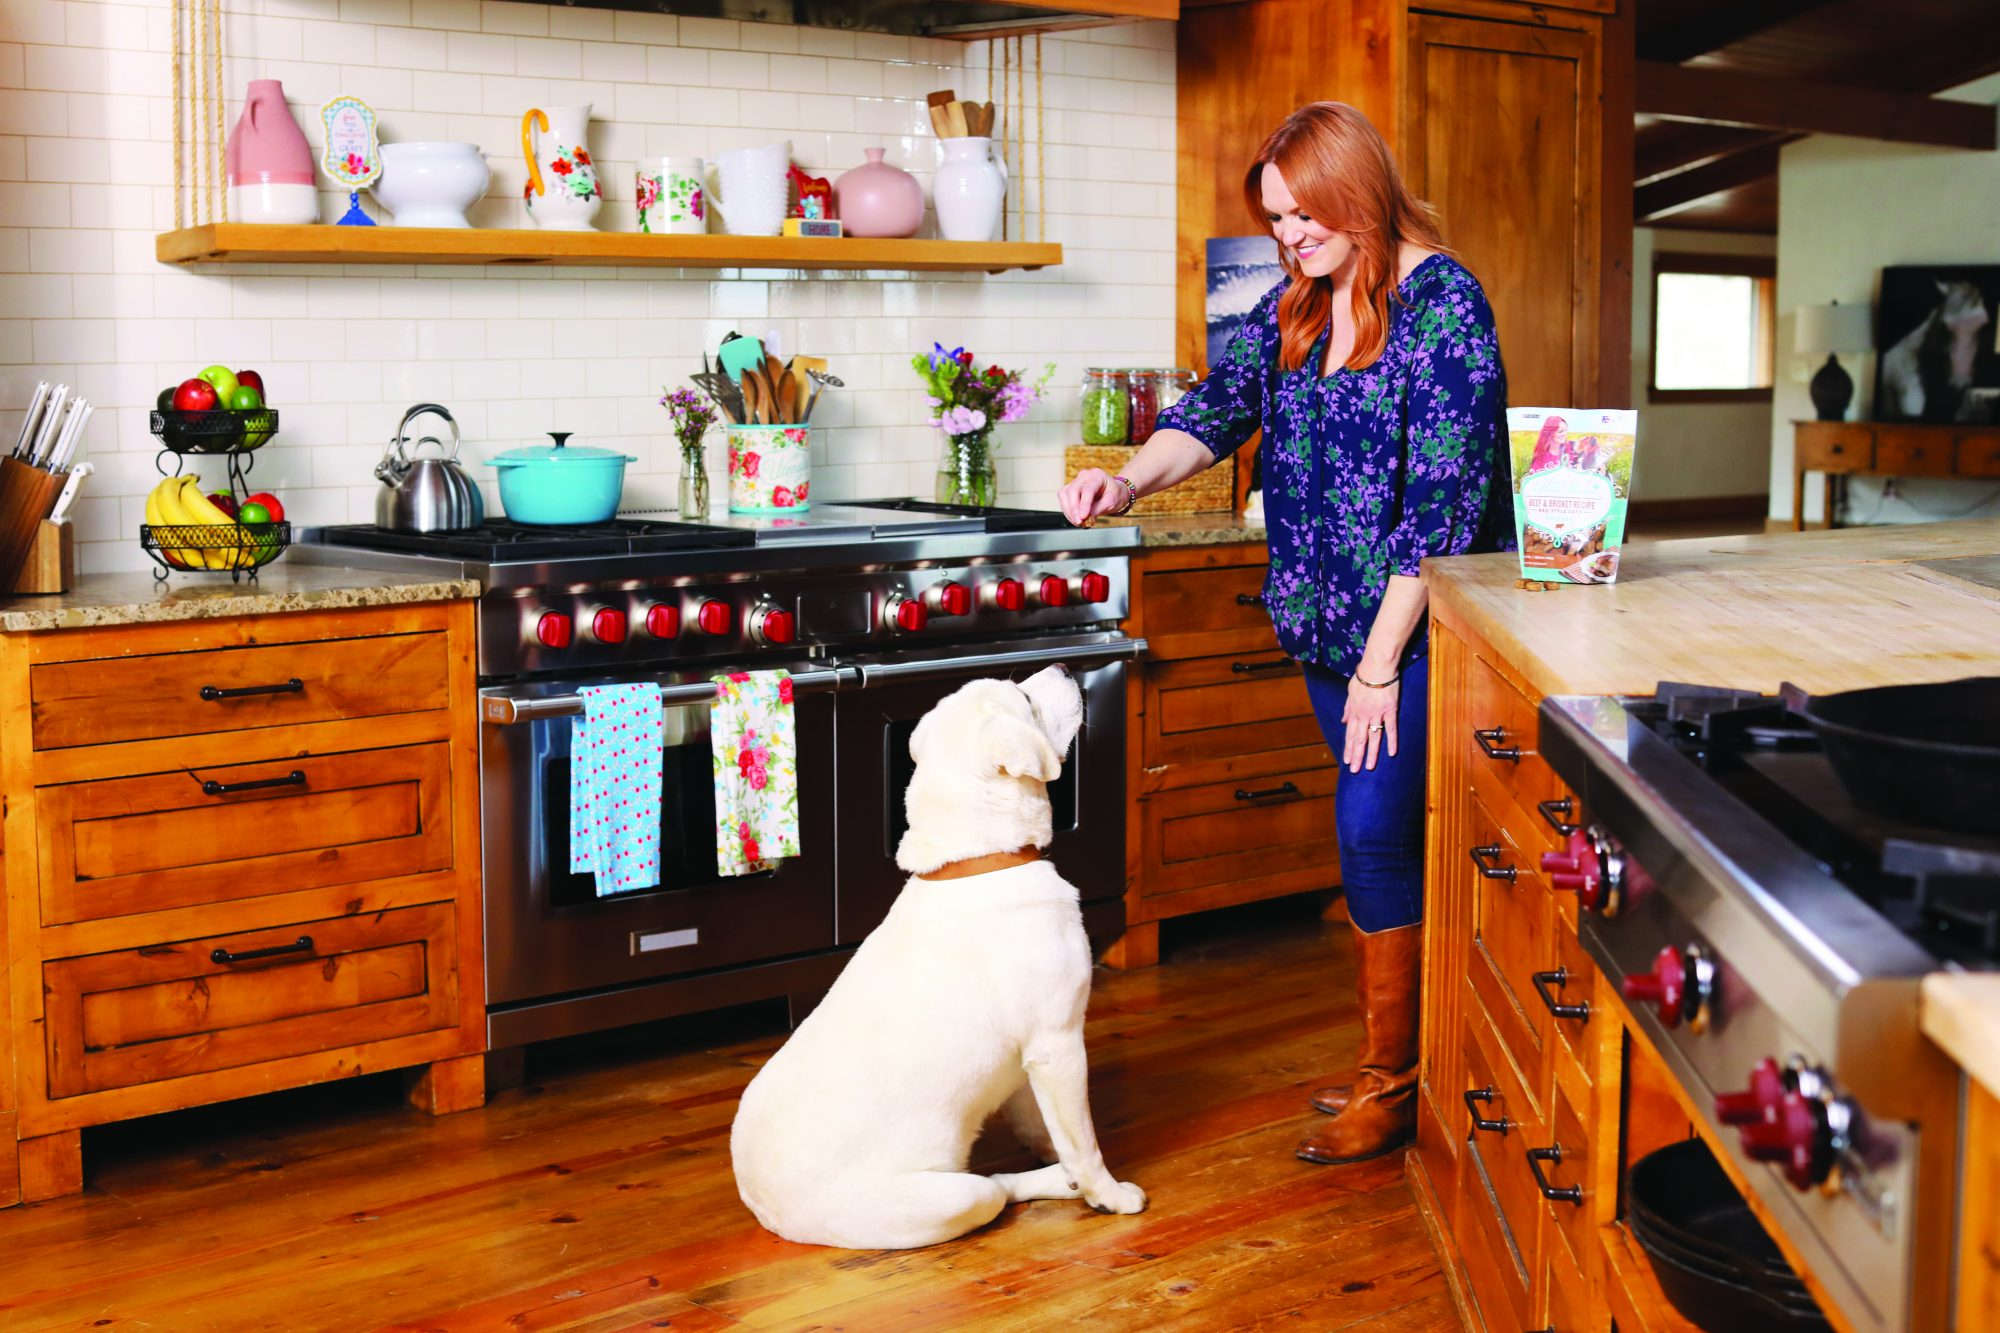 Ree Drummond Gives Treat to Lab